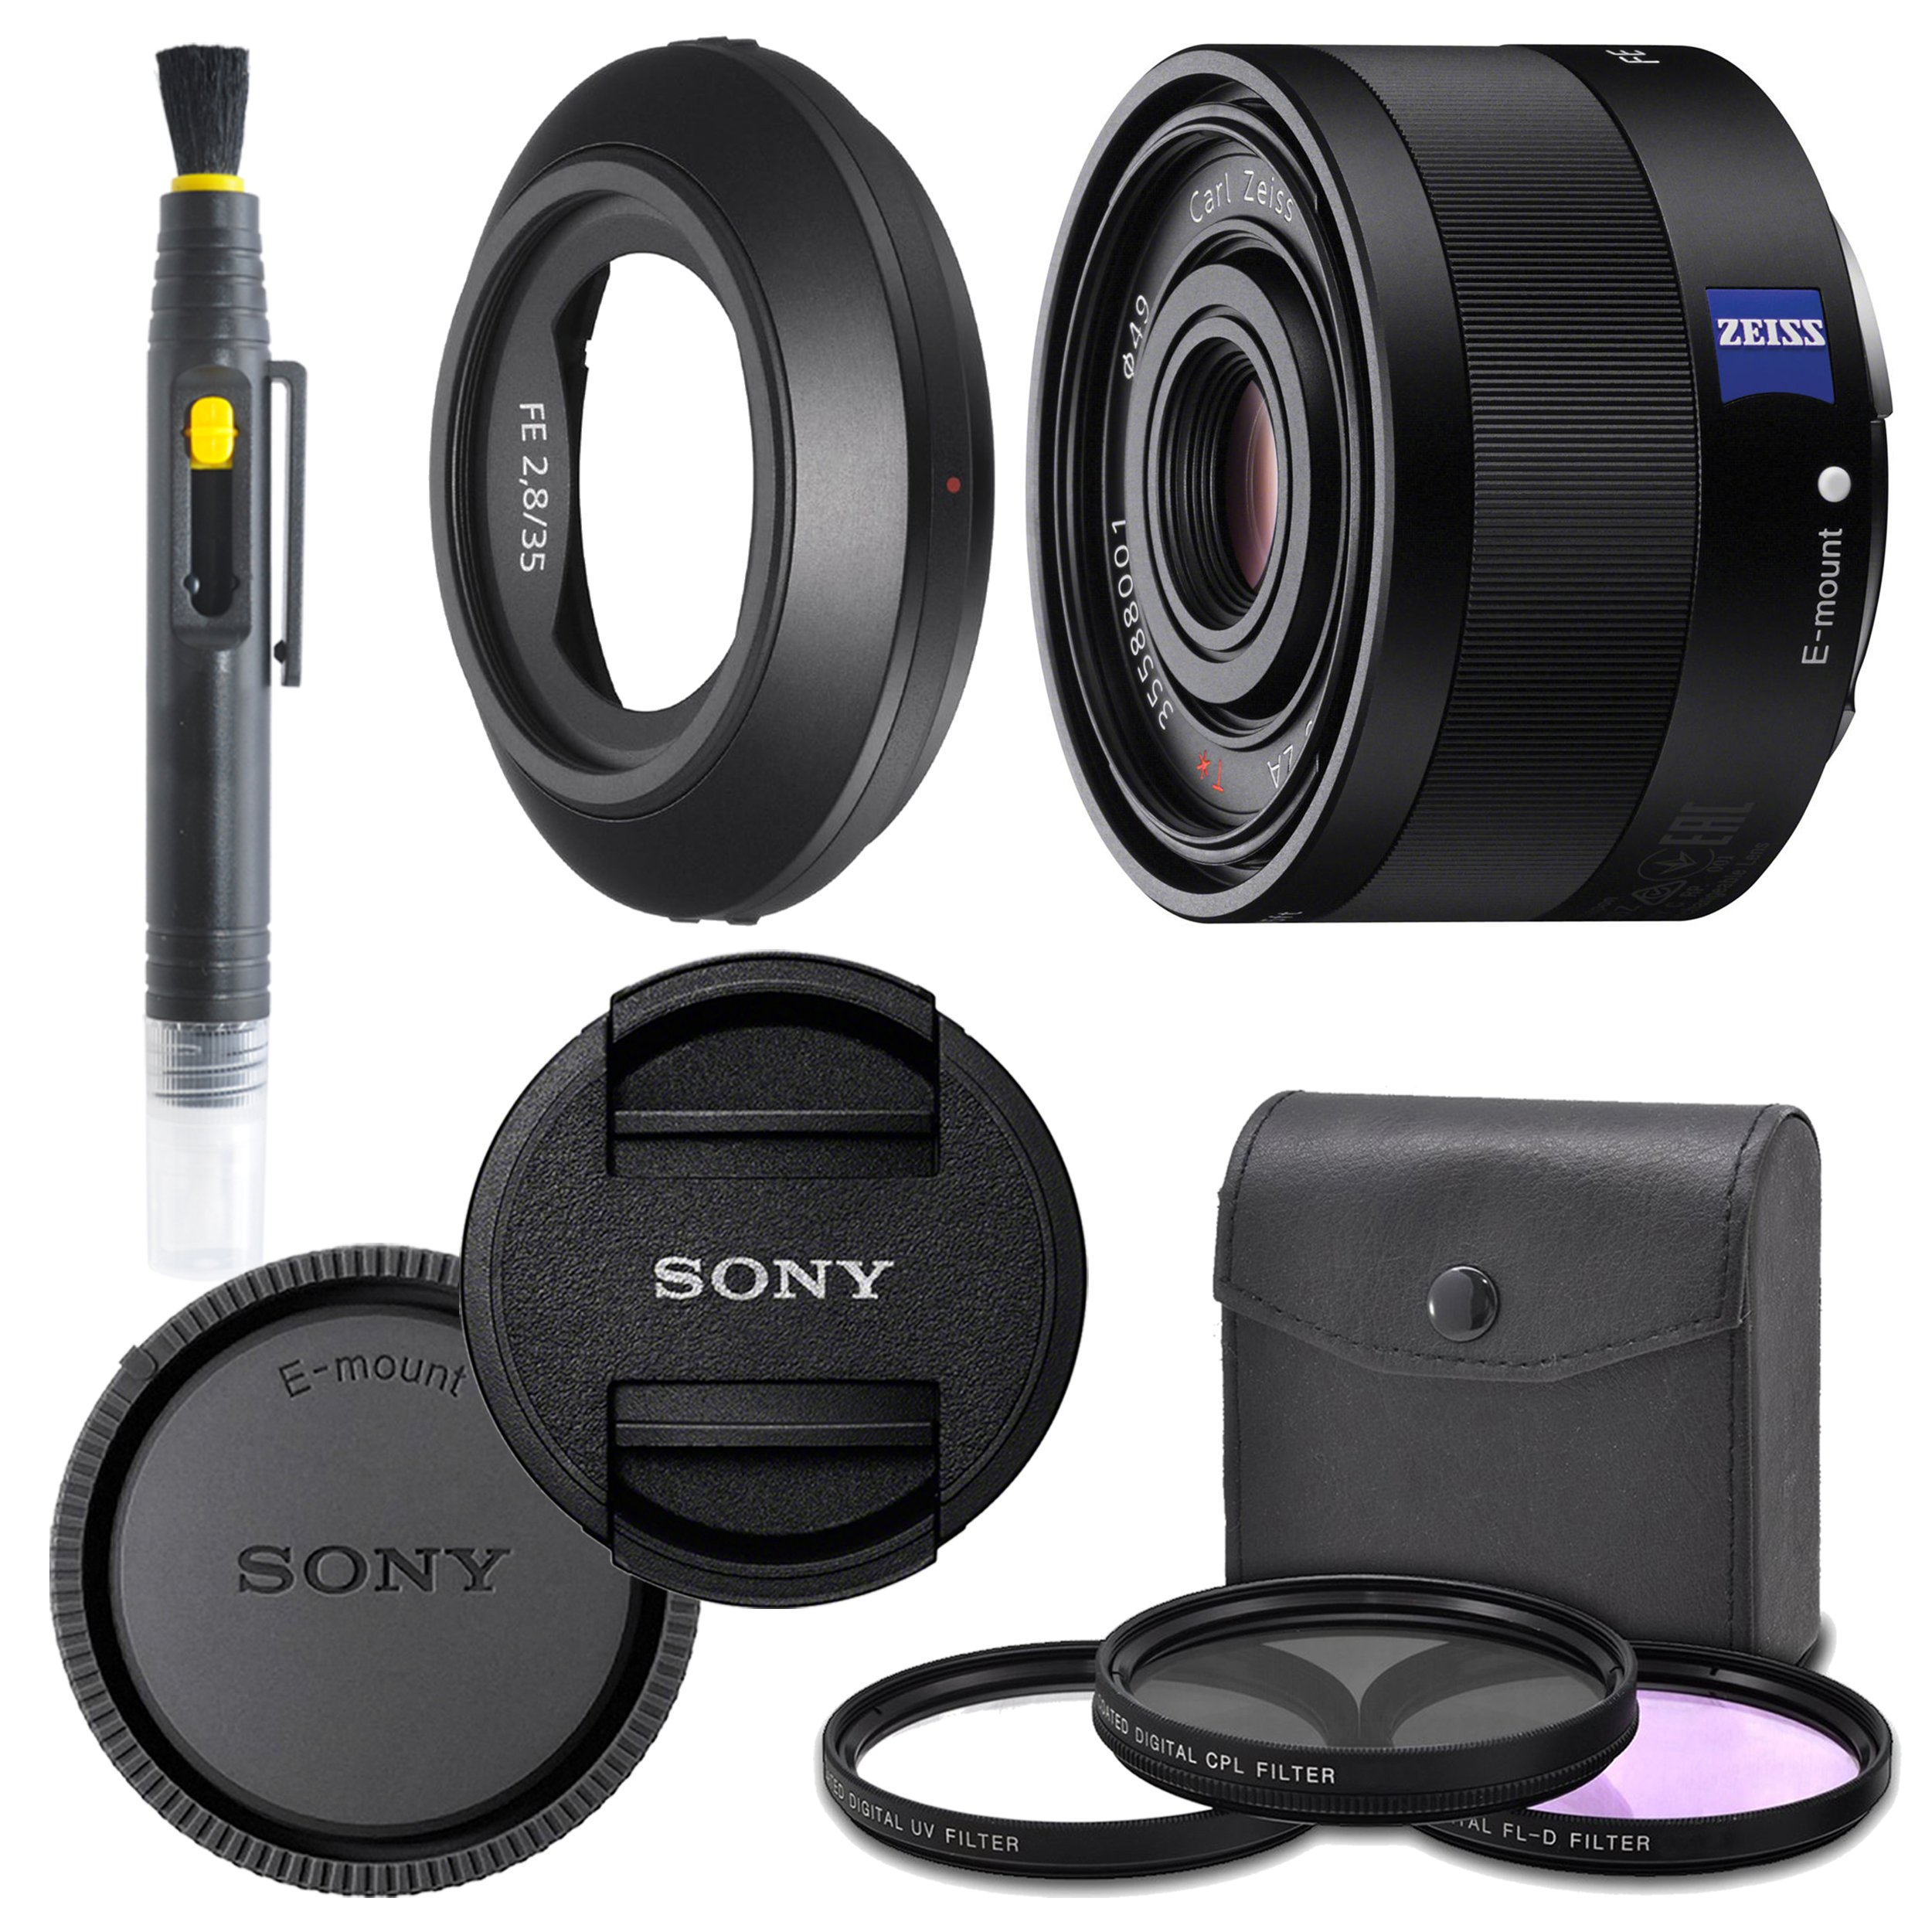 Sony Sonnar T FE 35mm f/2.8 ZA Lens with AOM Pro Kit. Includes: UV Filter, Circular Polarizing Filter, Fluorescent Day Filter, Sony Lens Hood, Front & Rear Caps - International Version